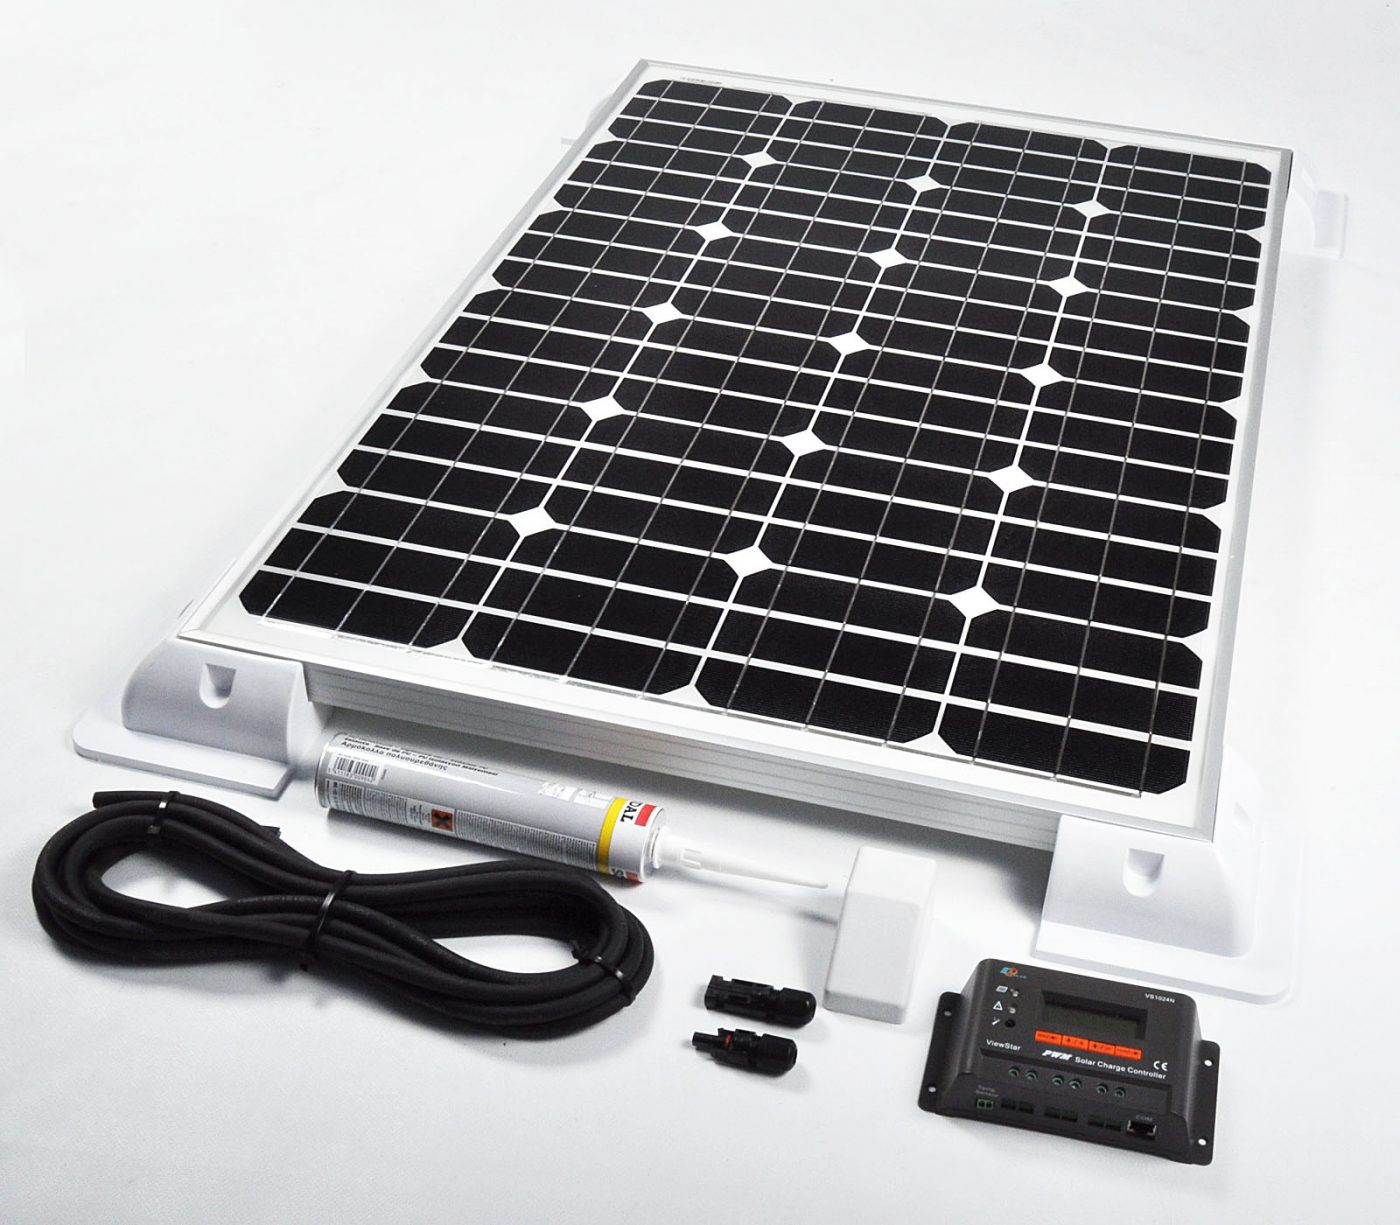 Sunstore 60w 12v Deluxe Solar Battery Charging Vehicle Kit Picture Of